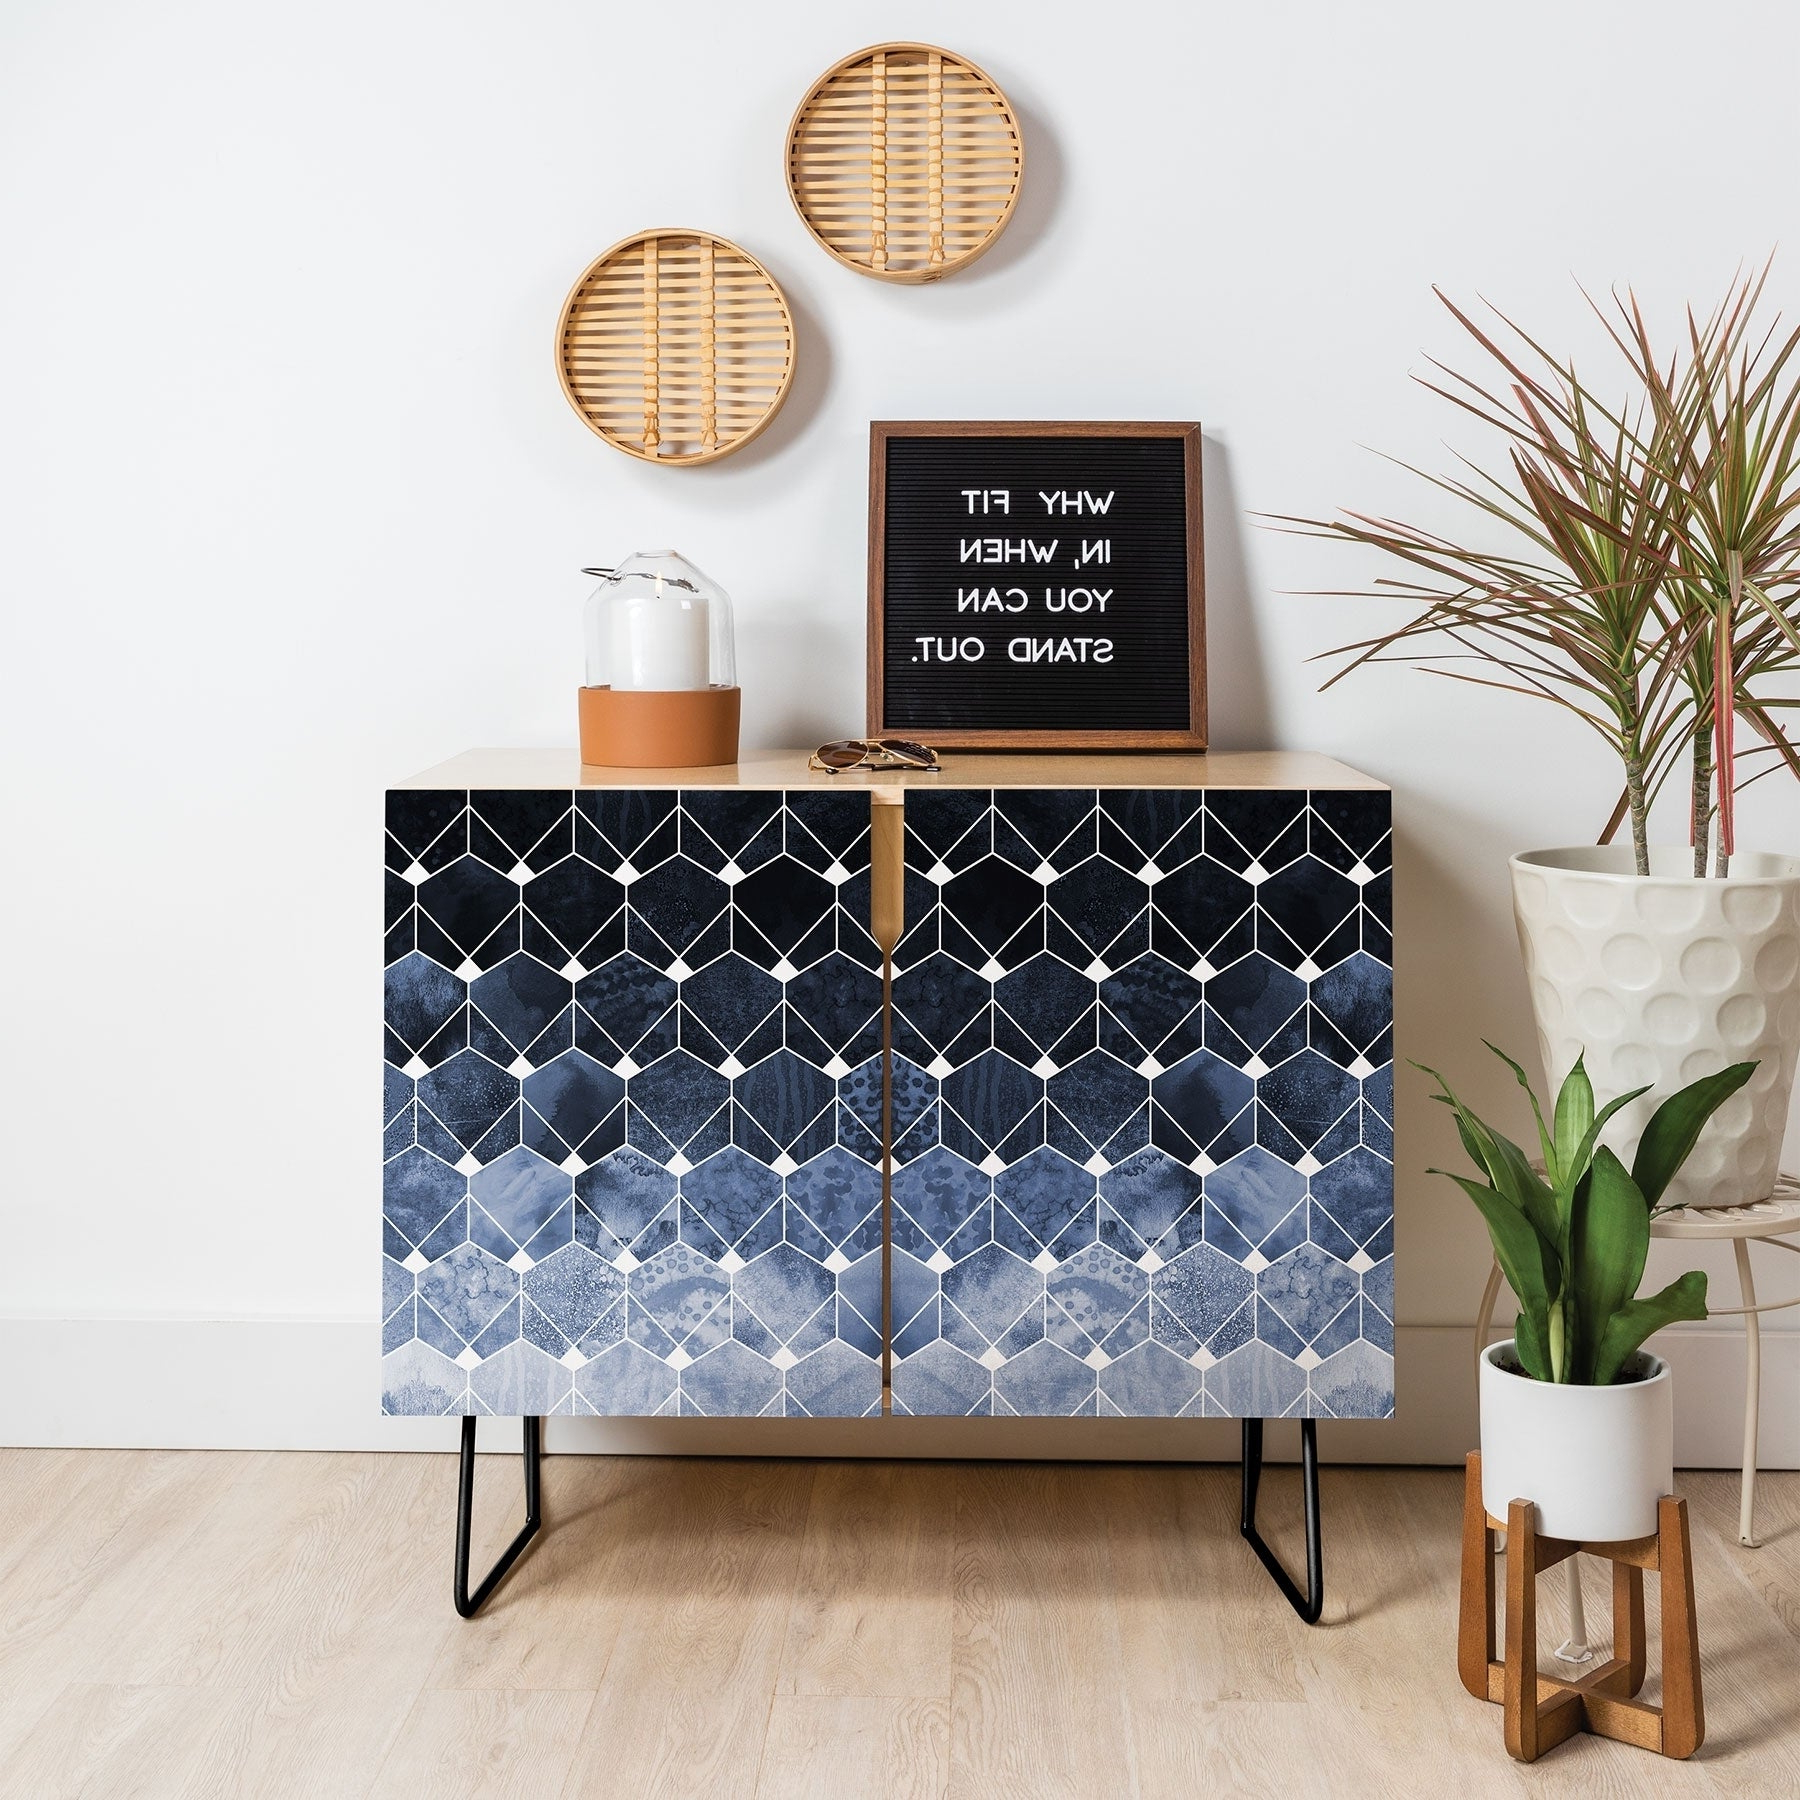 Deny Designs Blue Hexagons And Diamonds Credenza (Birch Or Walnut, 2 Leg  Options) With Regard To Line Geo Credenzas (View 3 of 20)